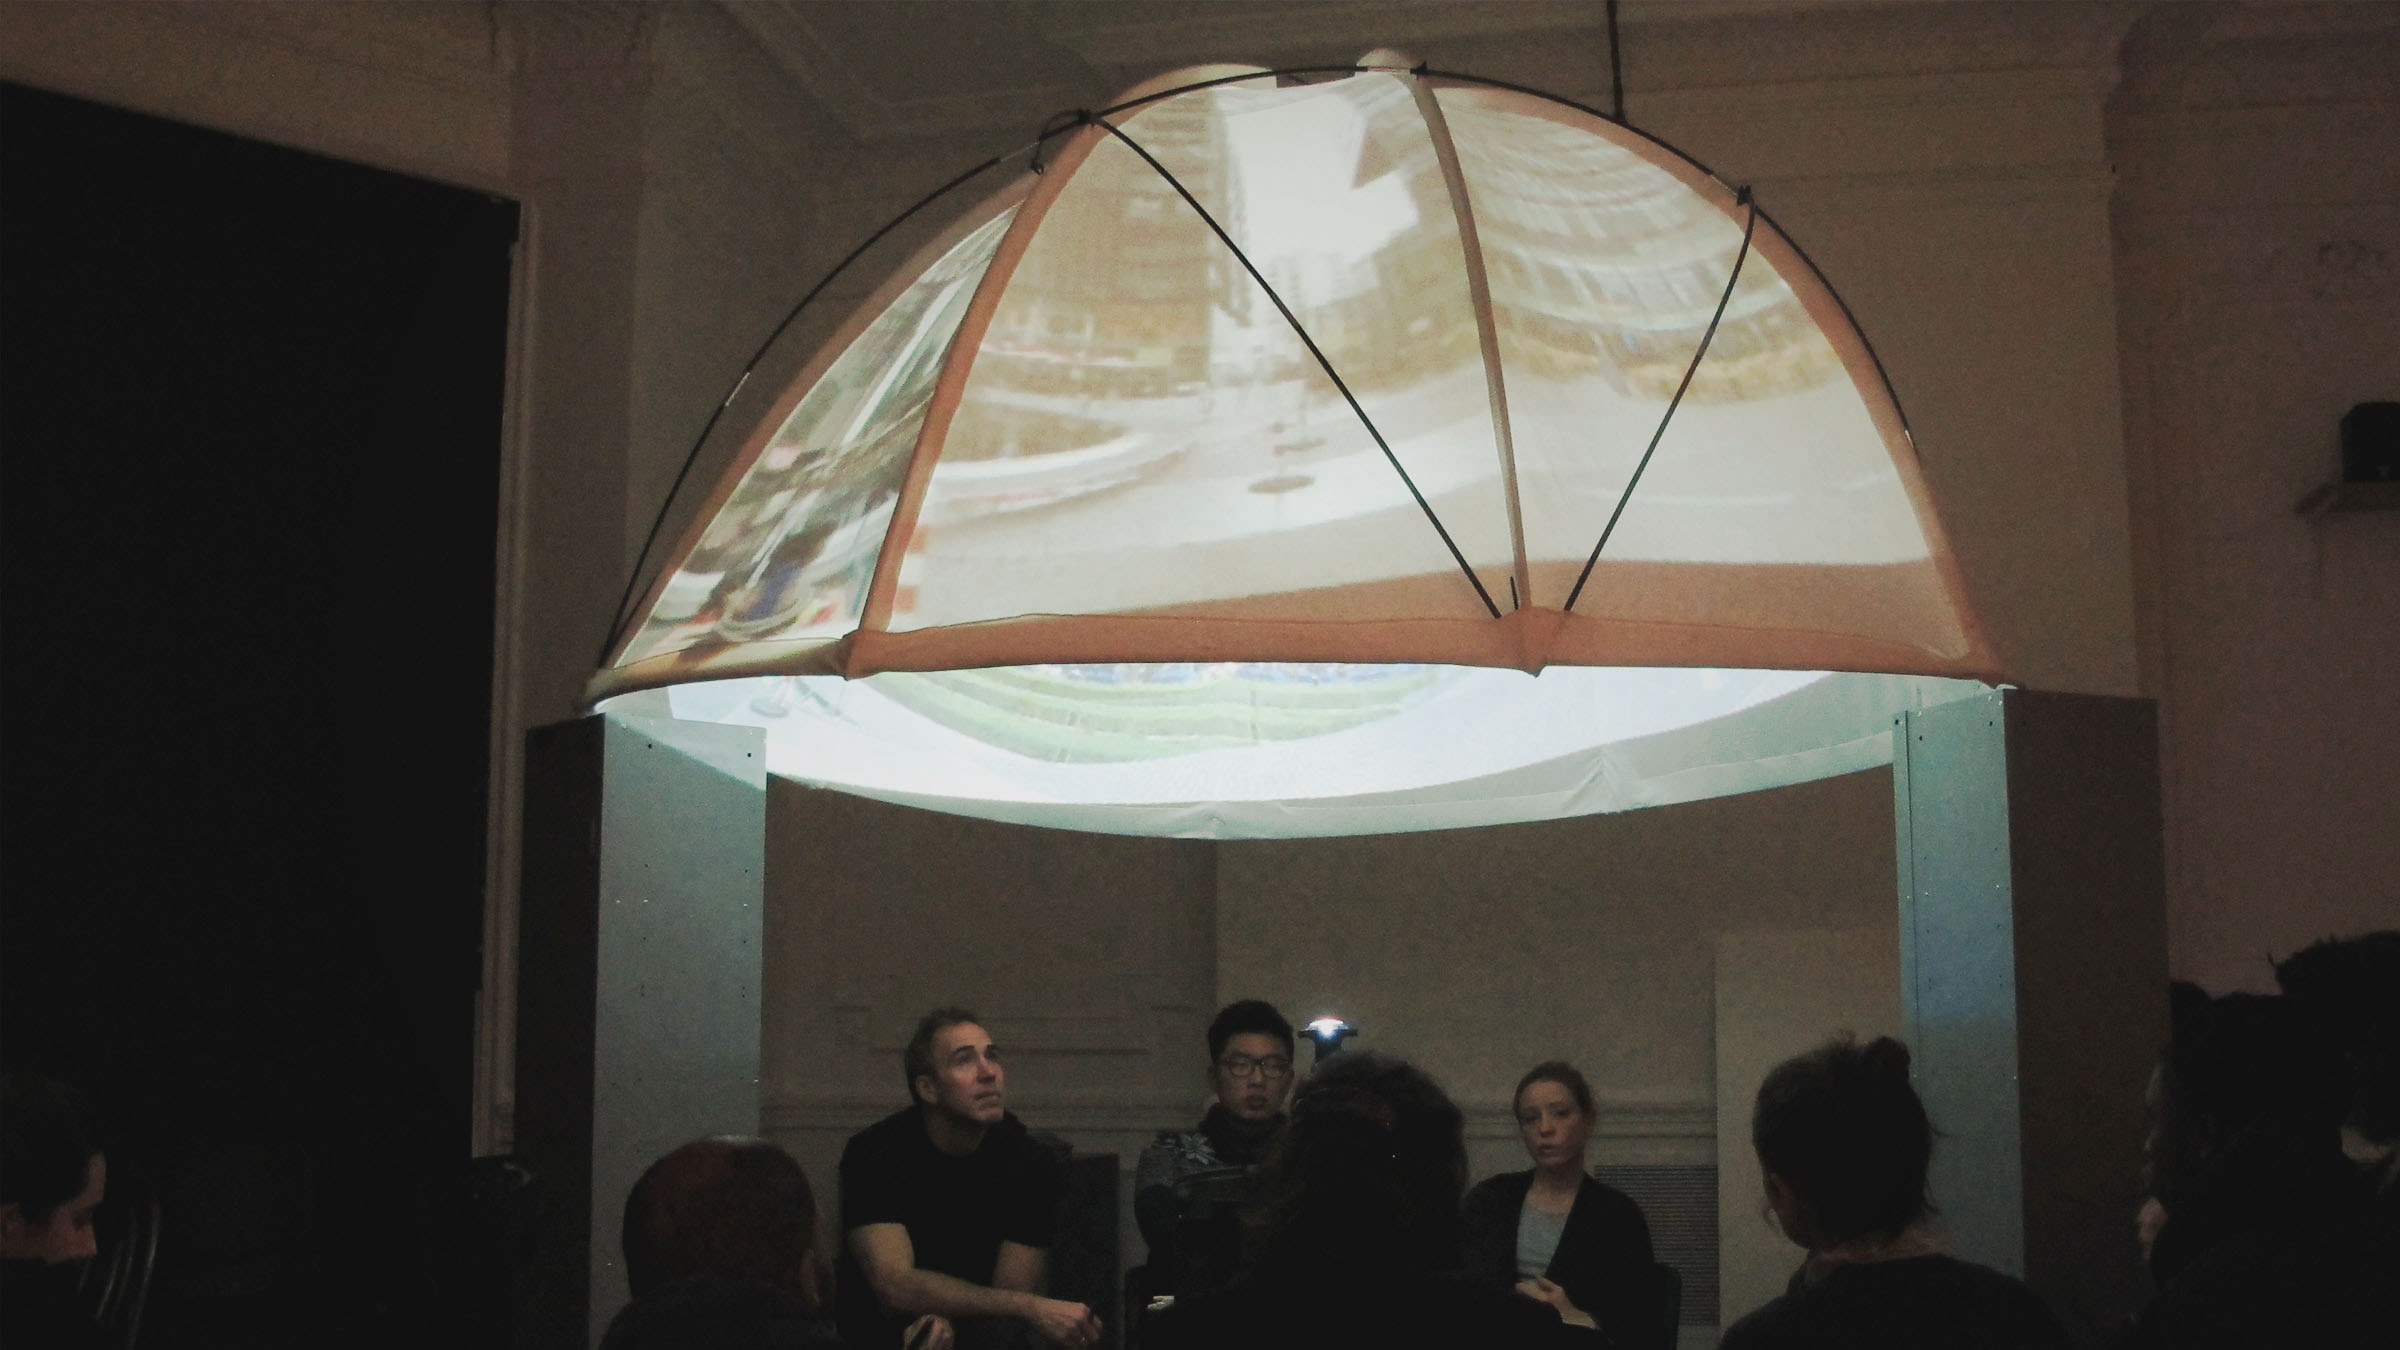 The Exploded Screen students project fulldome tests during the morning crit. & DIY Planetarium | Michaela French